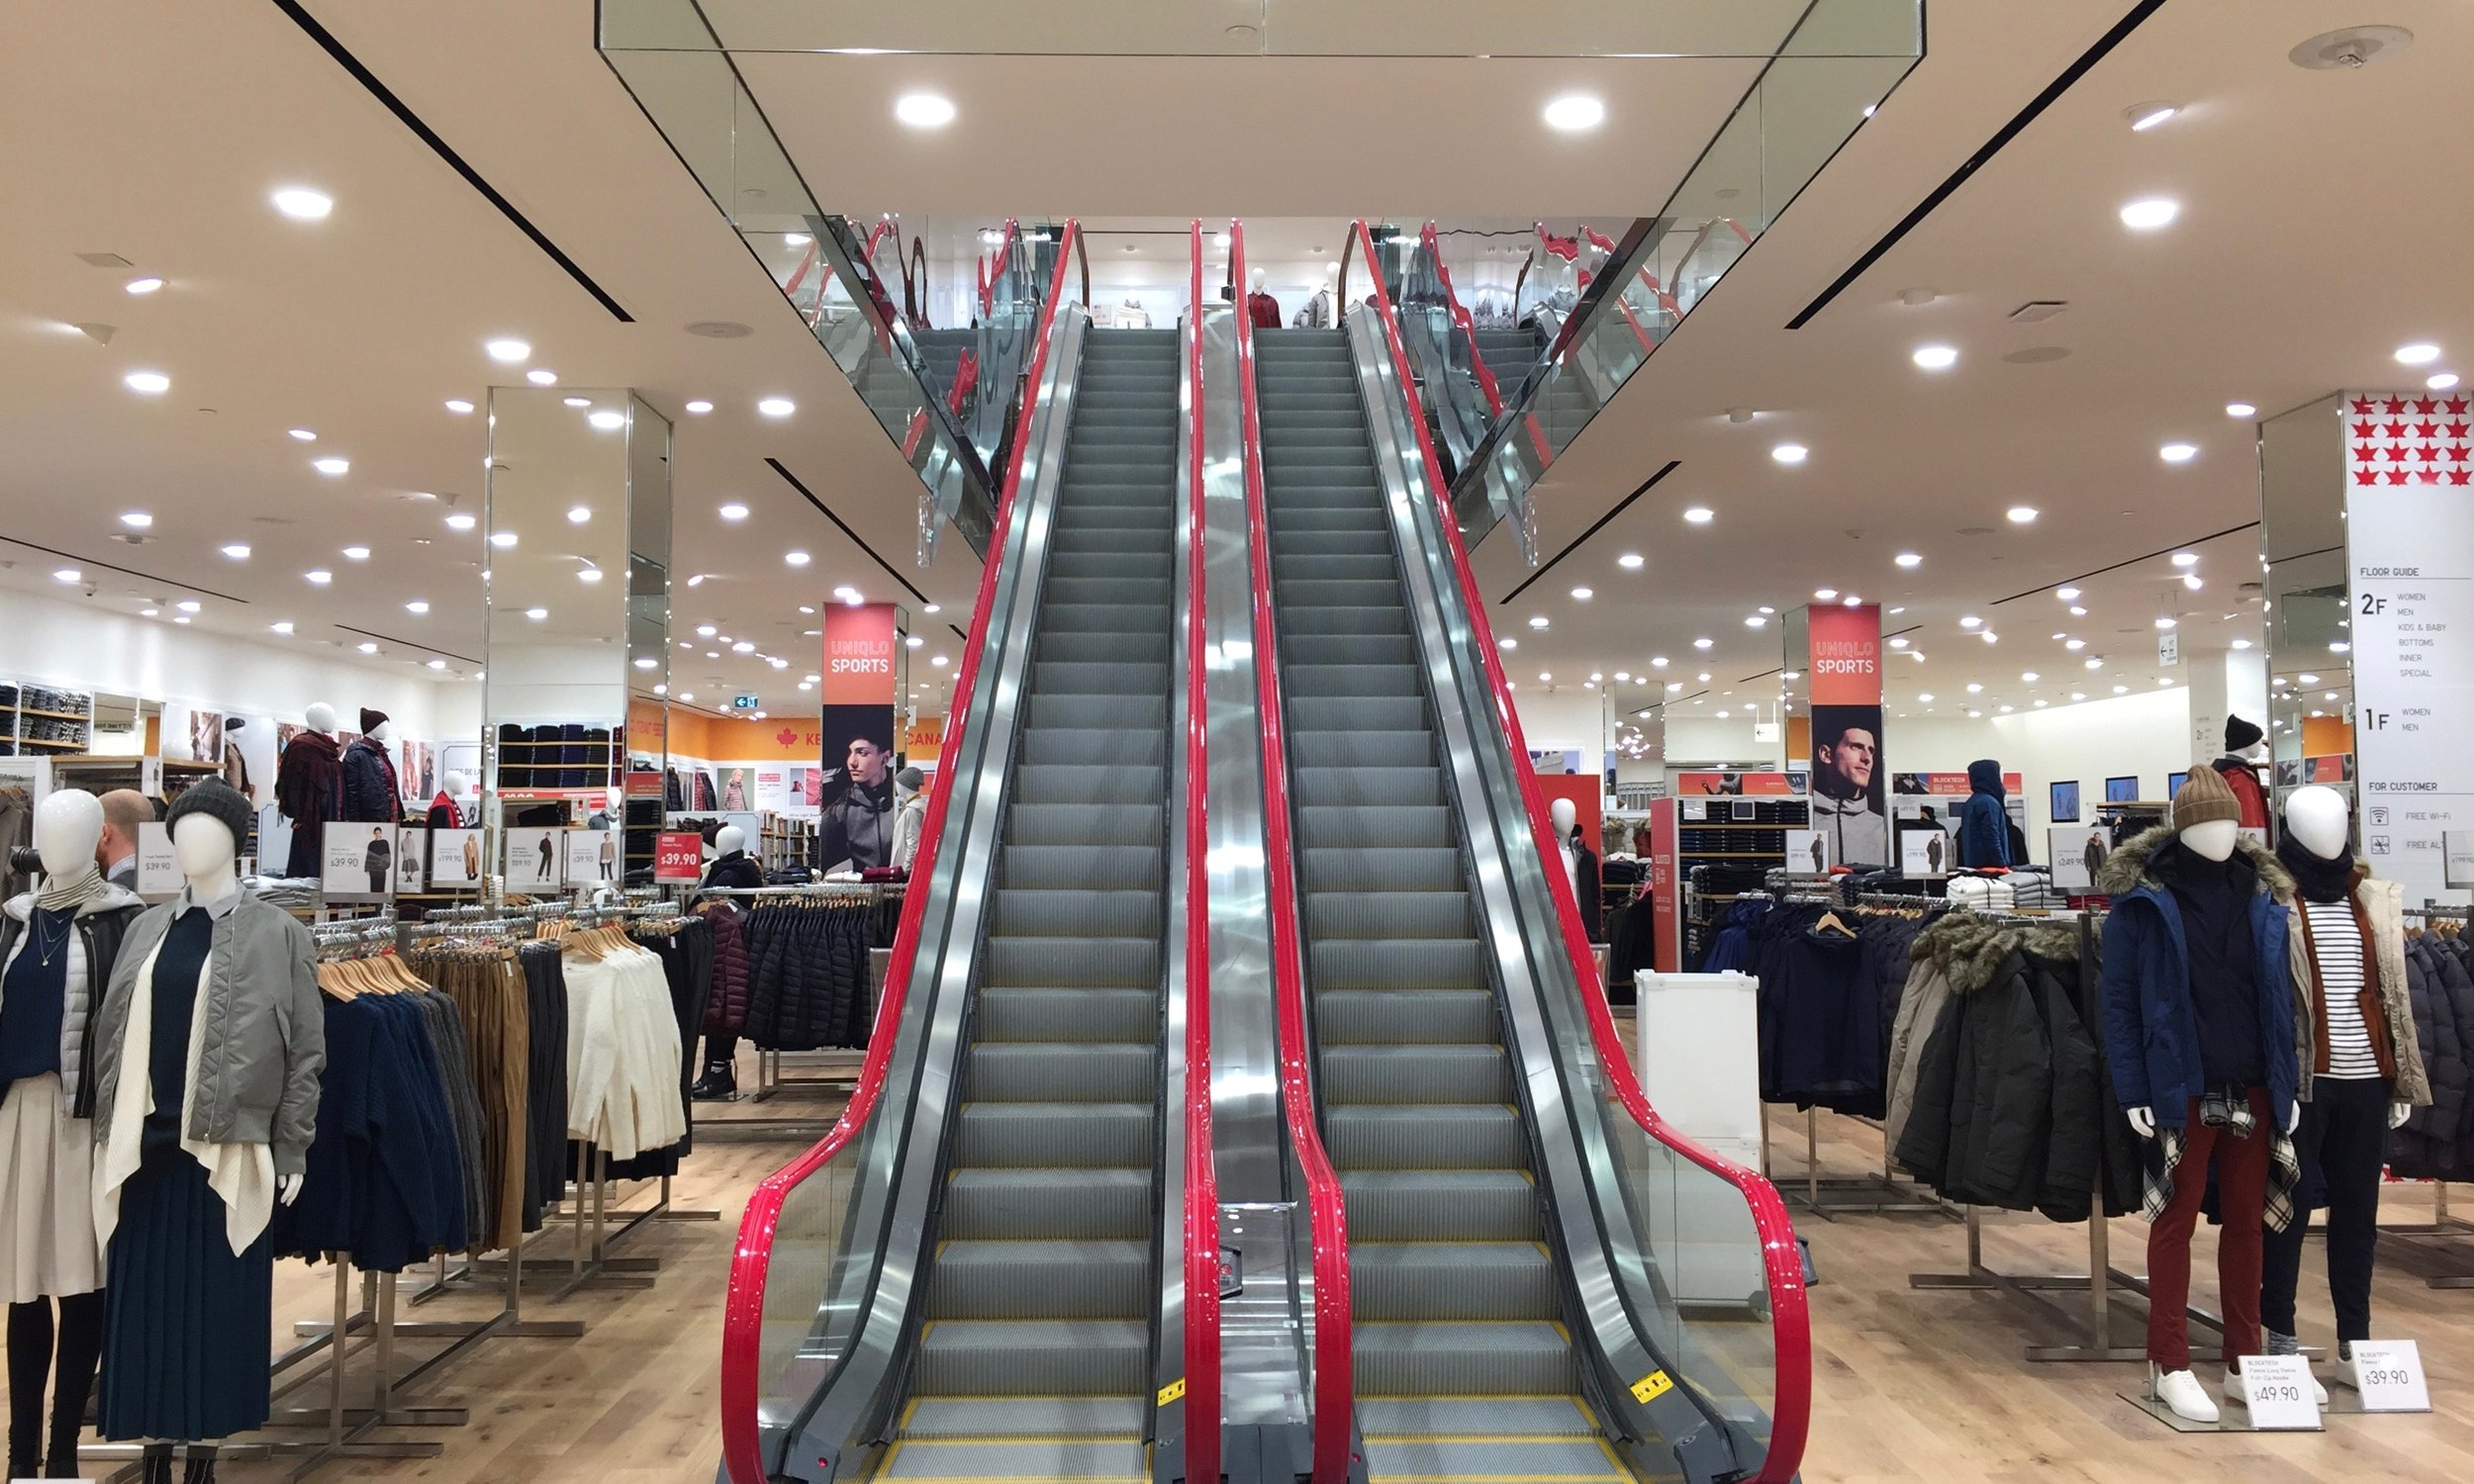 Customers are greeted by two large escalators that lead shoppers to more men's and women's collections.